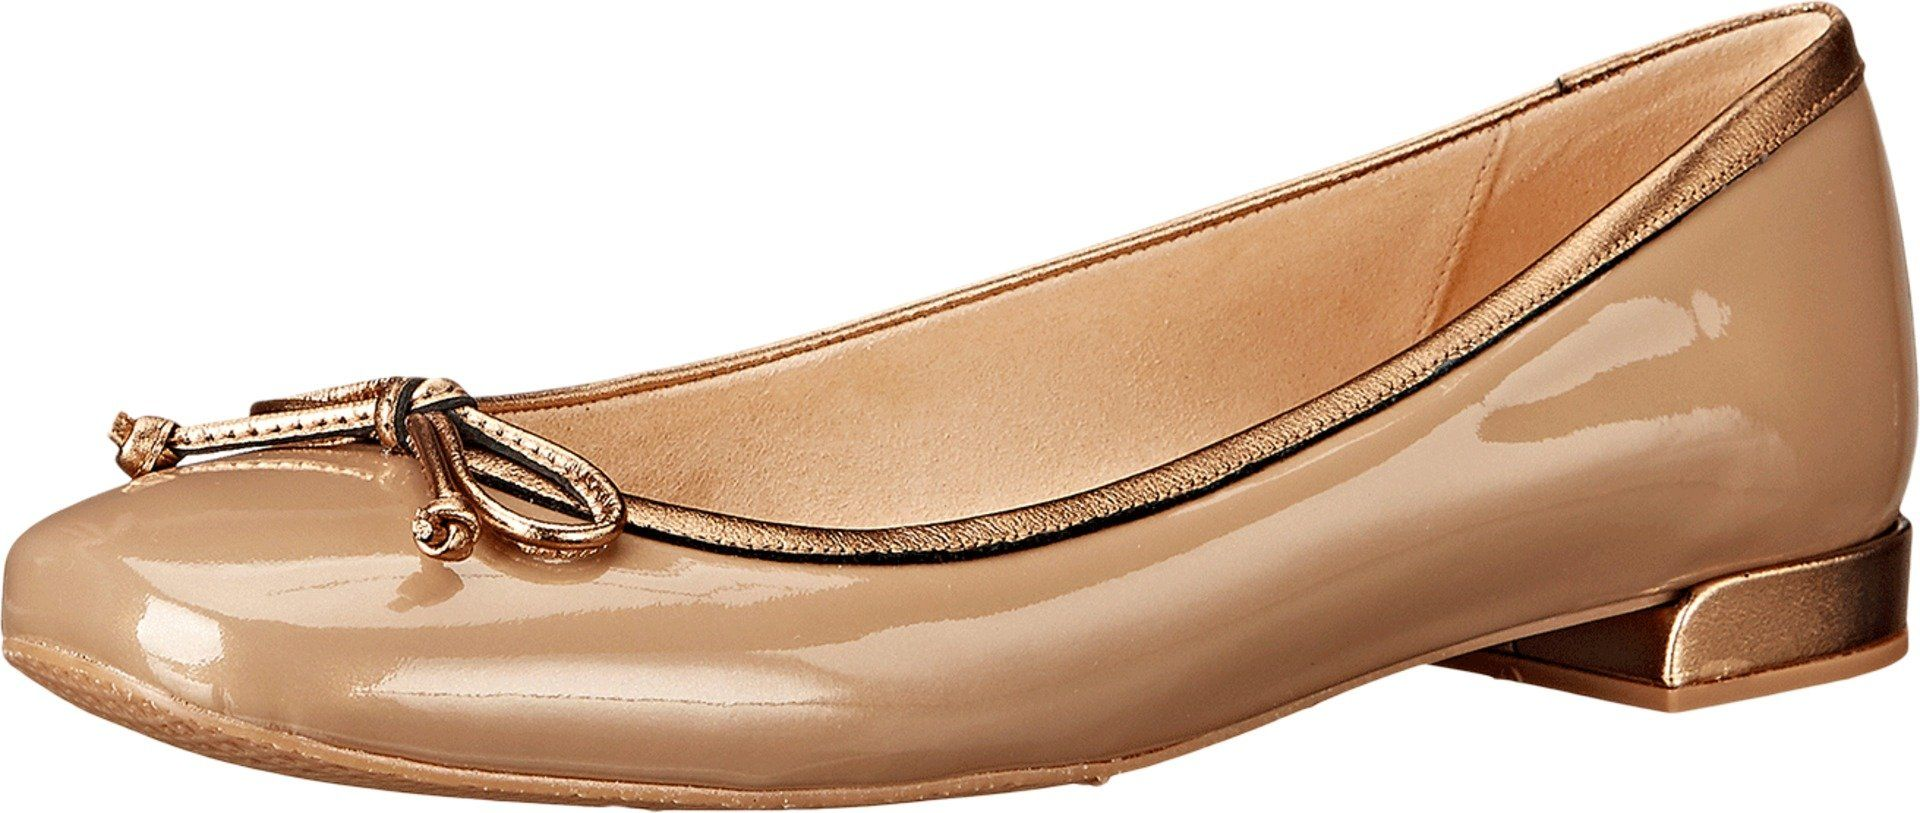 Stuart Weitzman Women's Shoestring Gold Aniline Flat 4 M. Made in USA or  Imported.